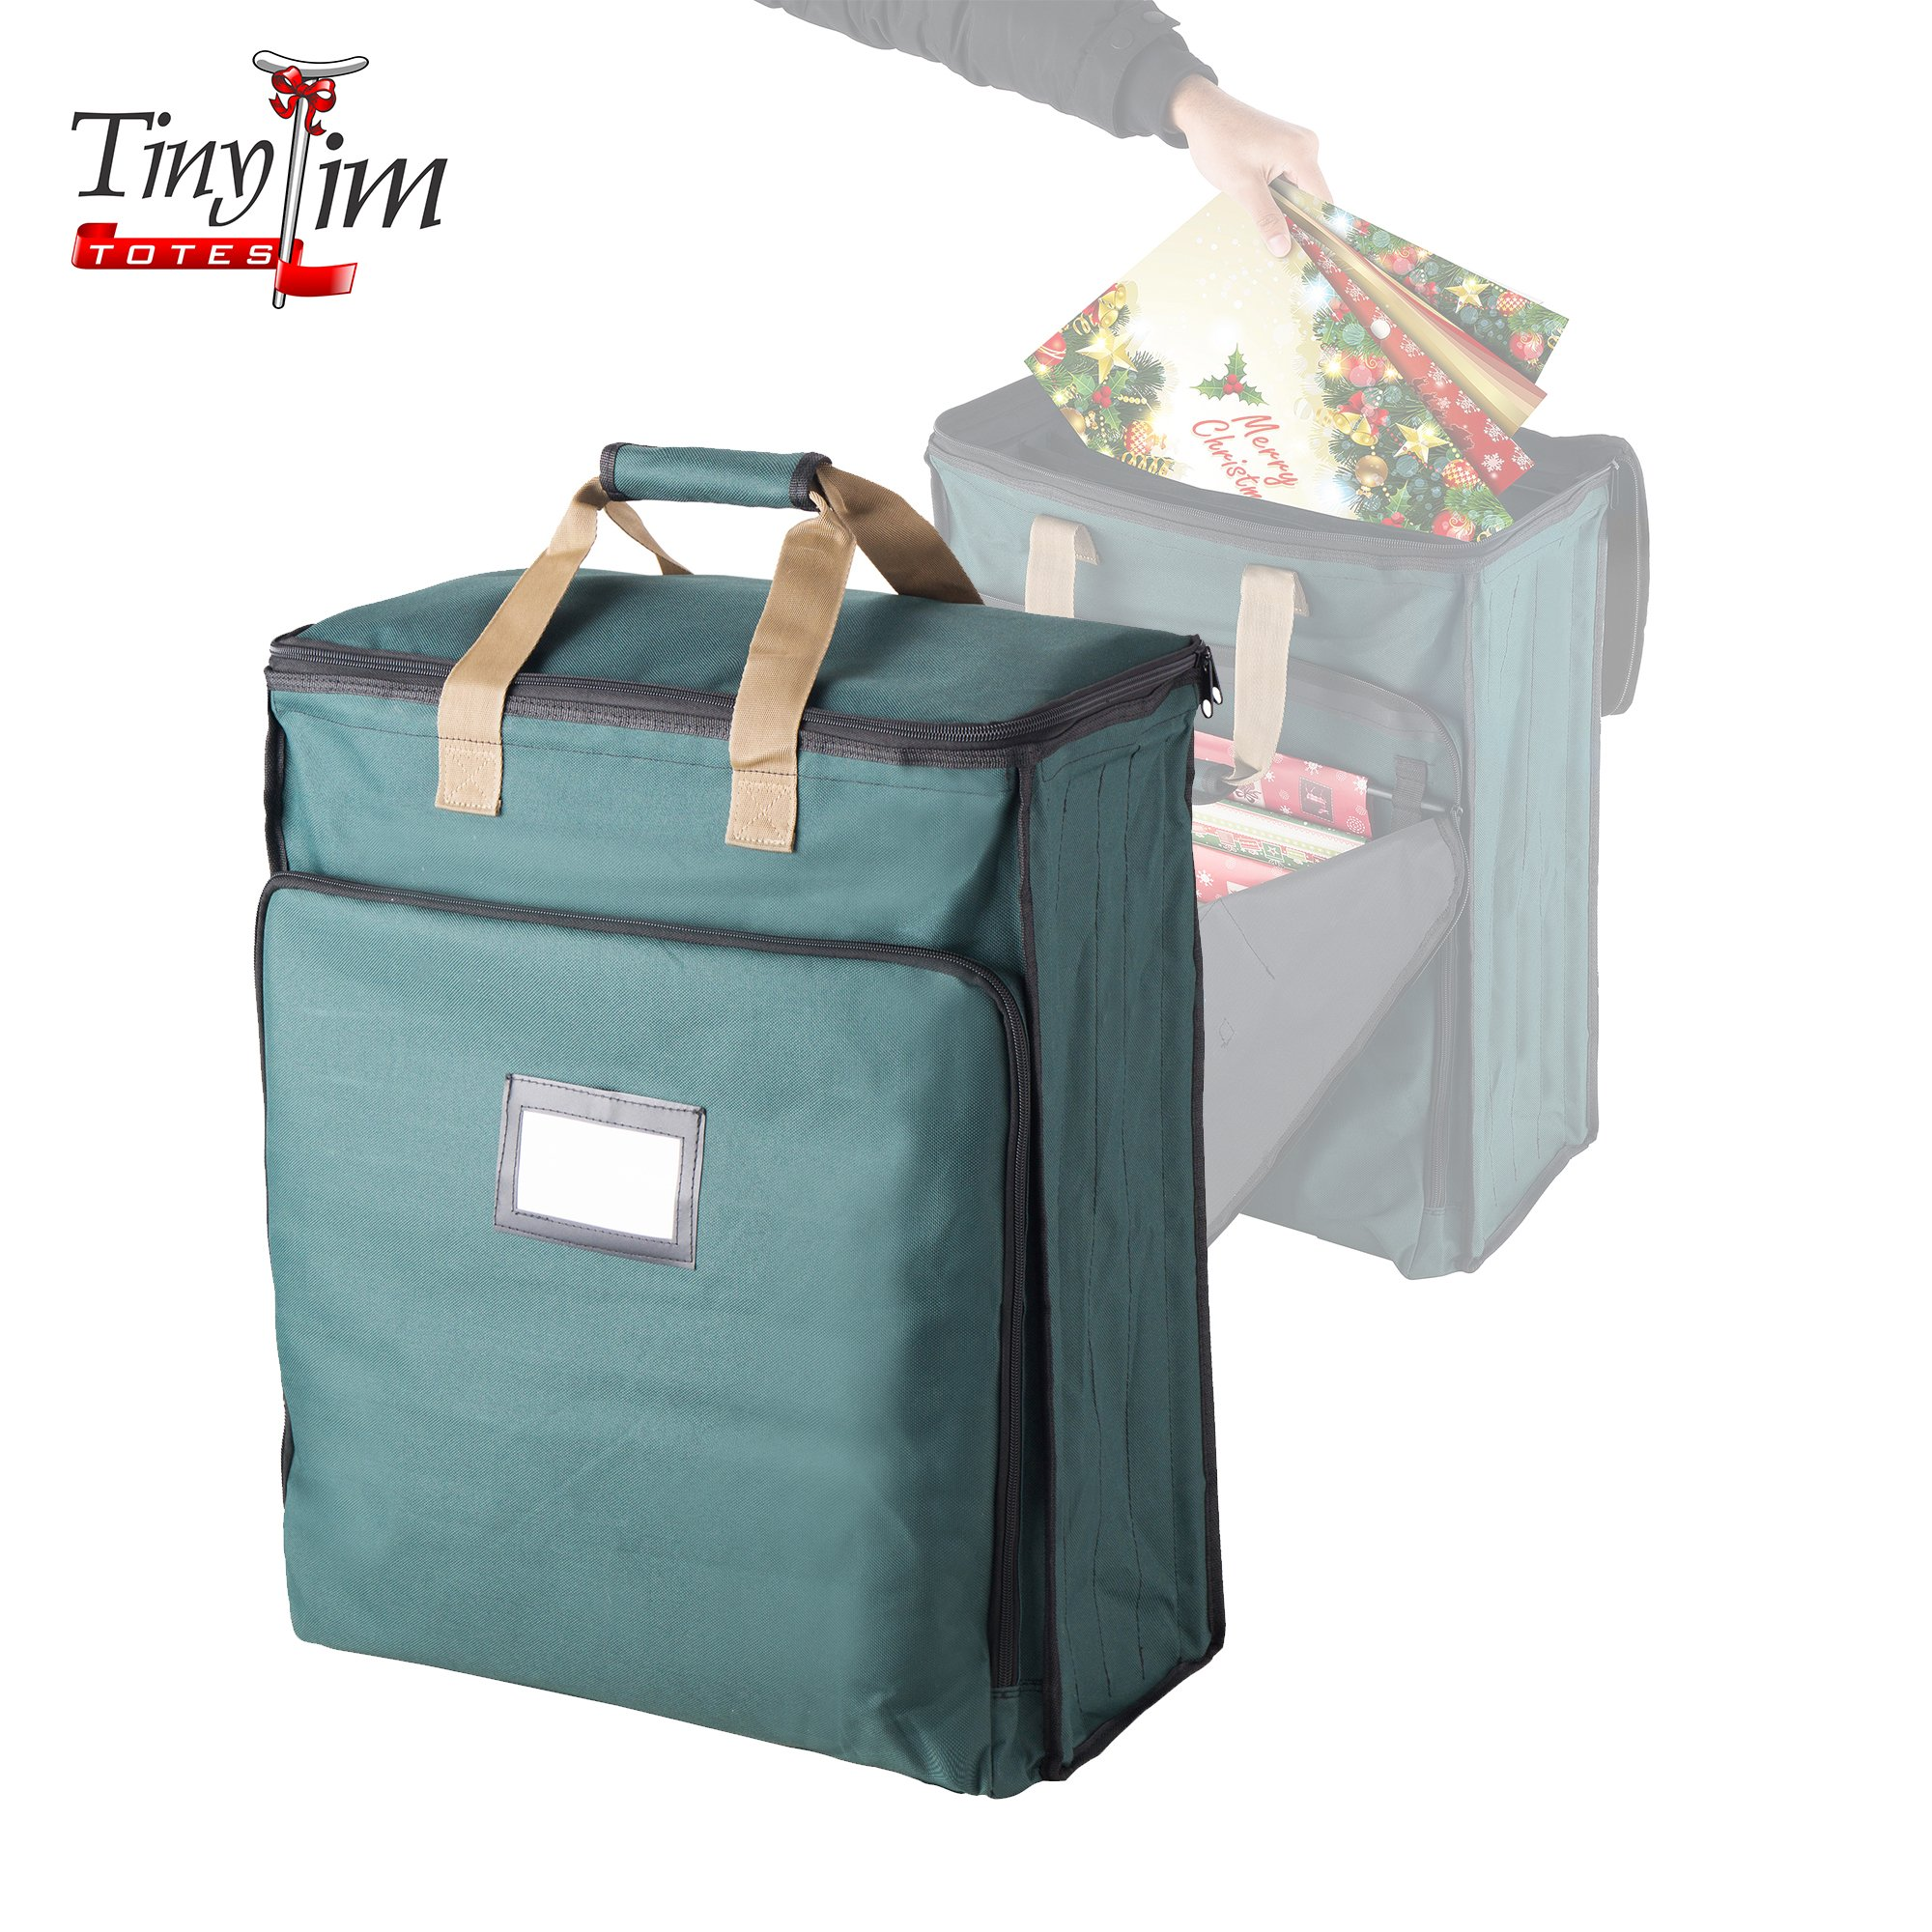 Tiny Tim Totes 83-DT5580 5730 Ultimate Organizer   Holiday Storage for Gift Wrap and Bags   Green